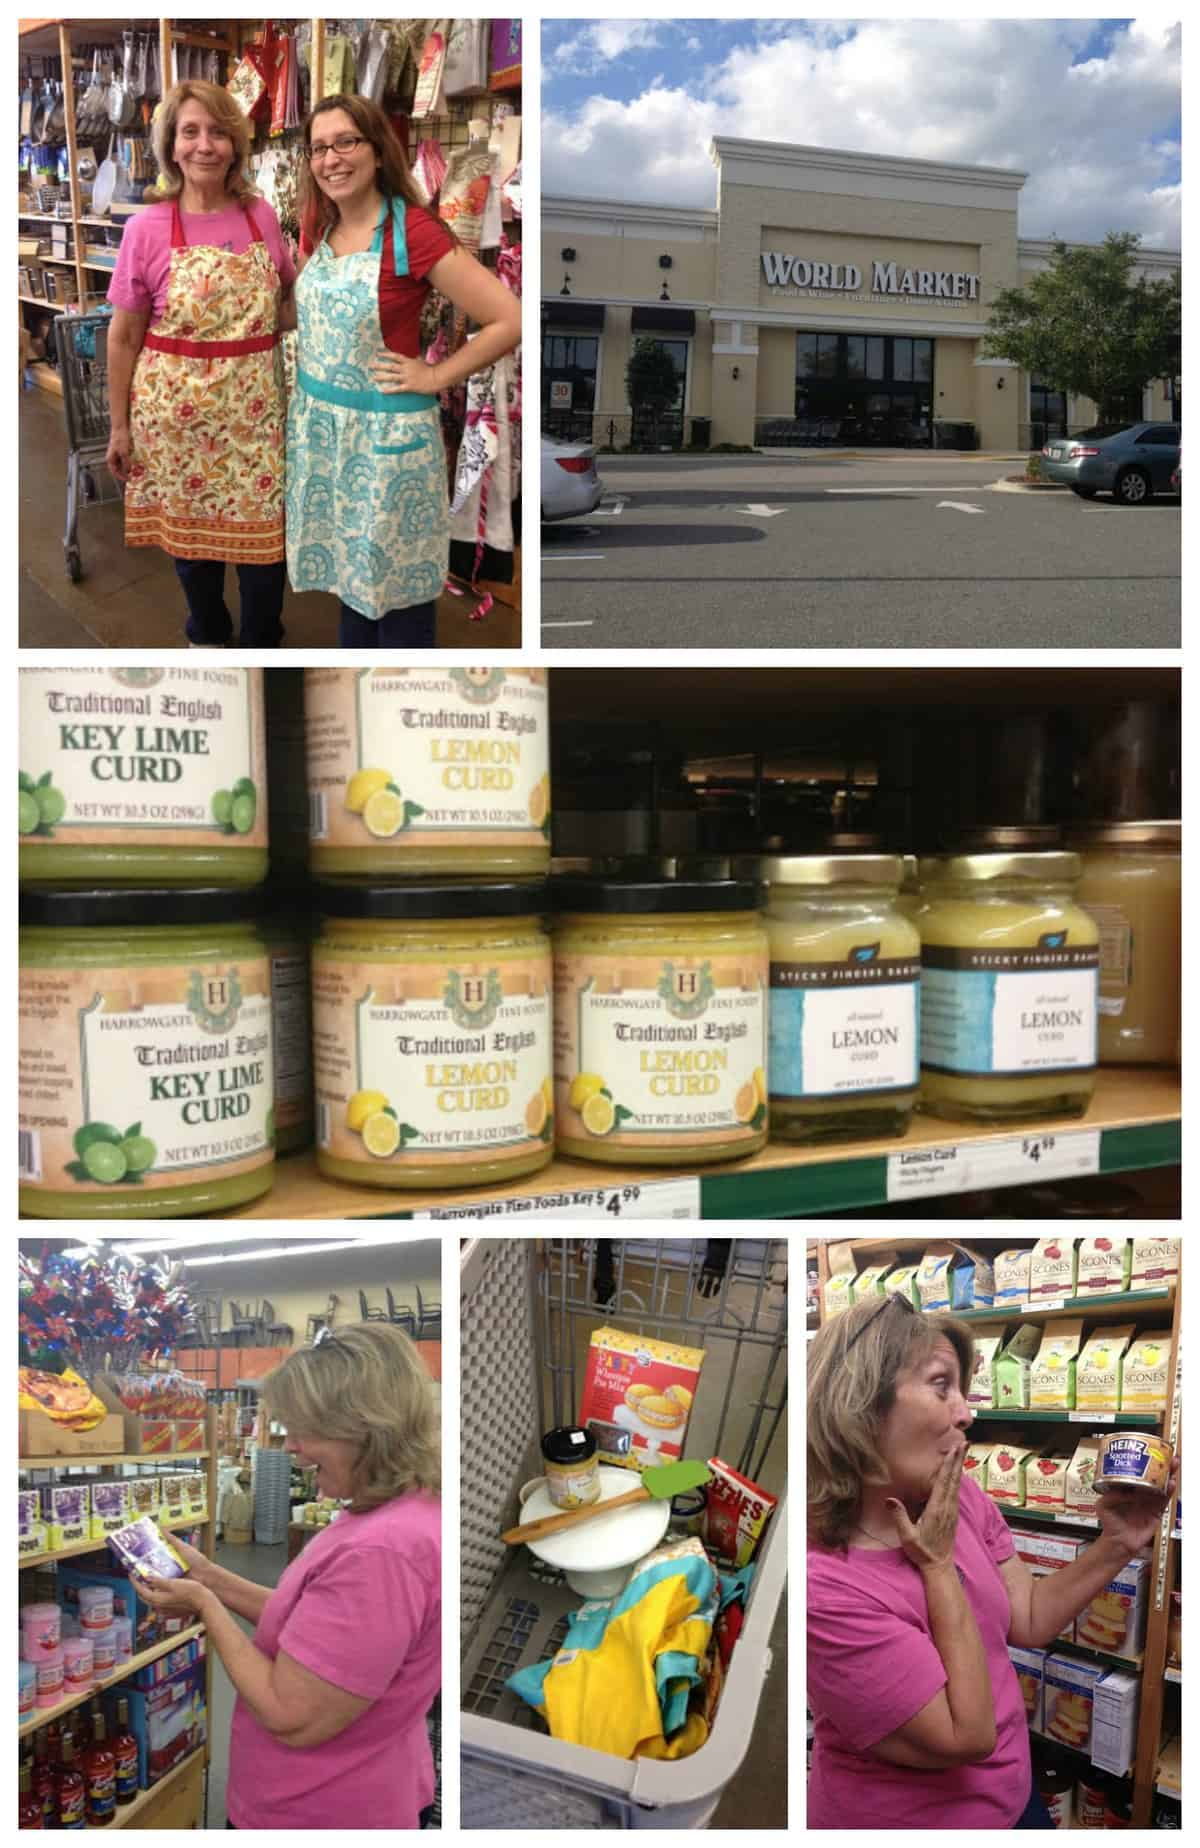 World Market Shopping #MyAmazingMom #PMedia